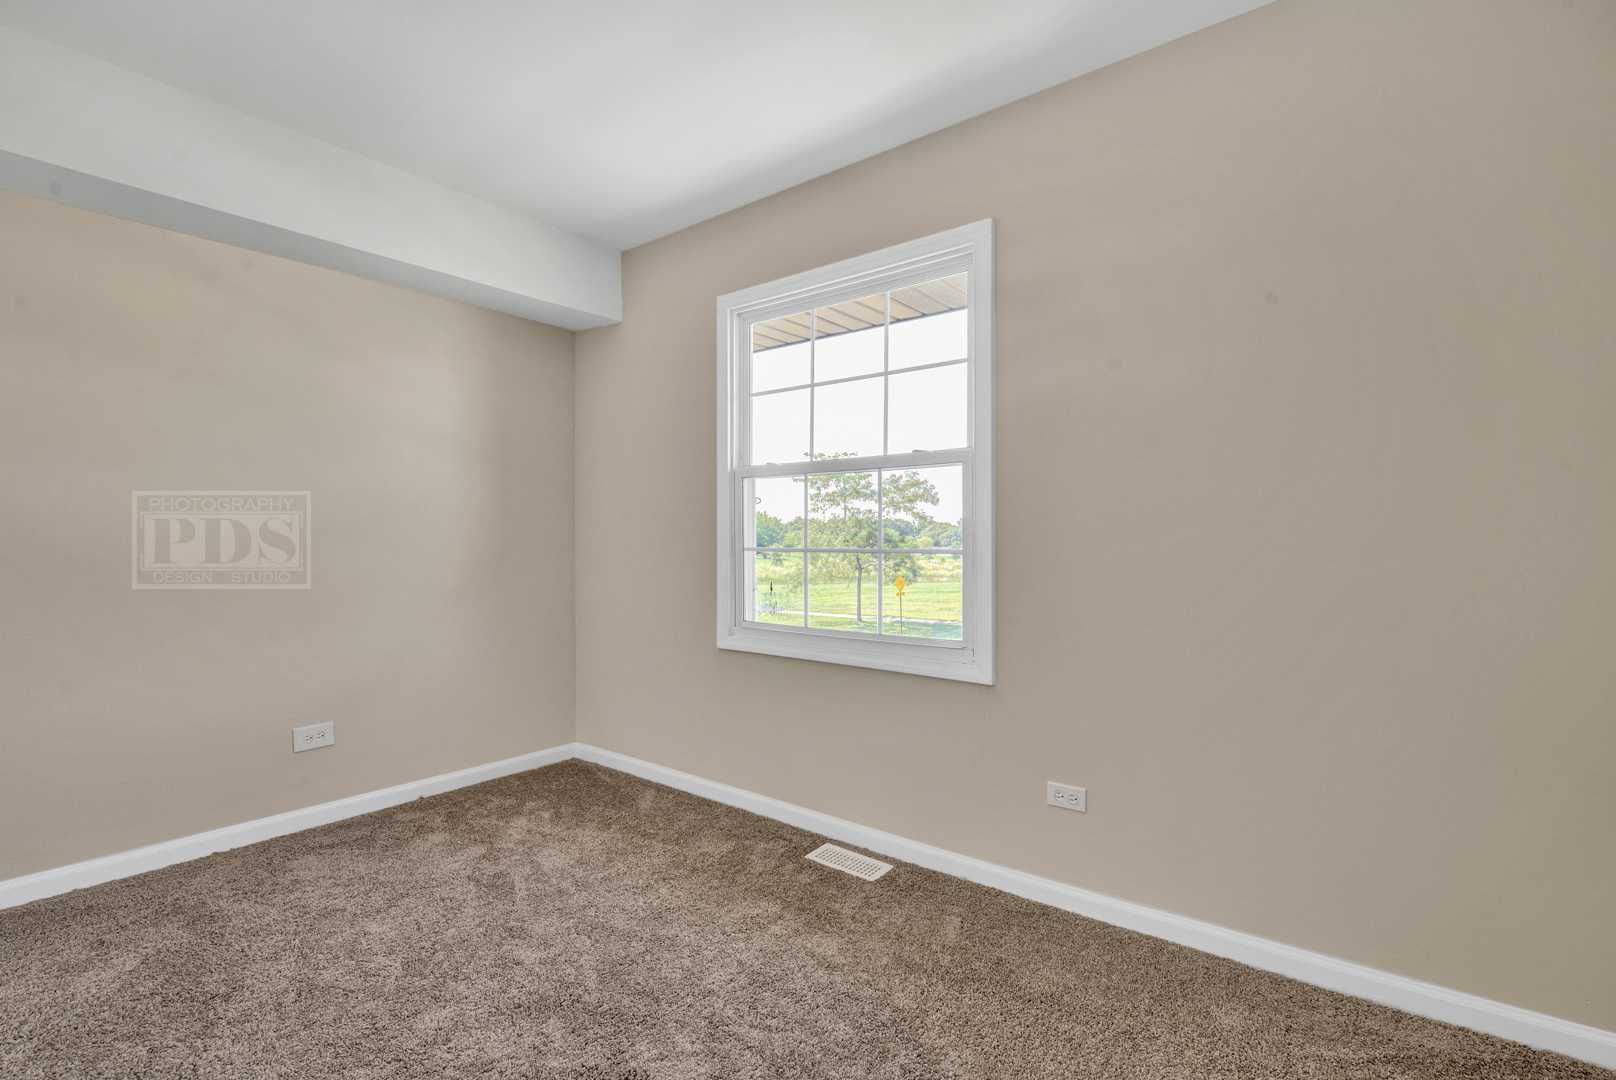 7704 West Frankfort Square, Frankfort, Illinois, 60423